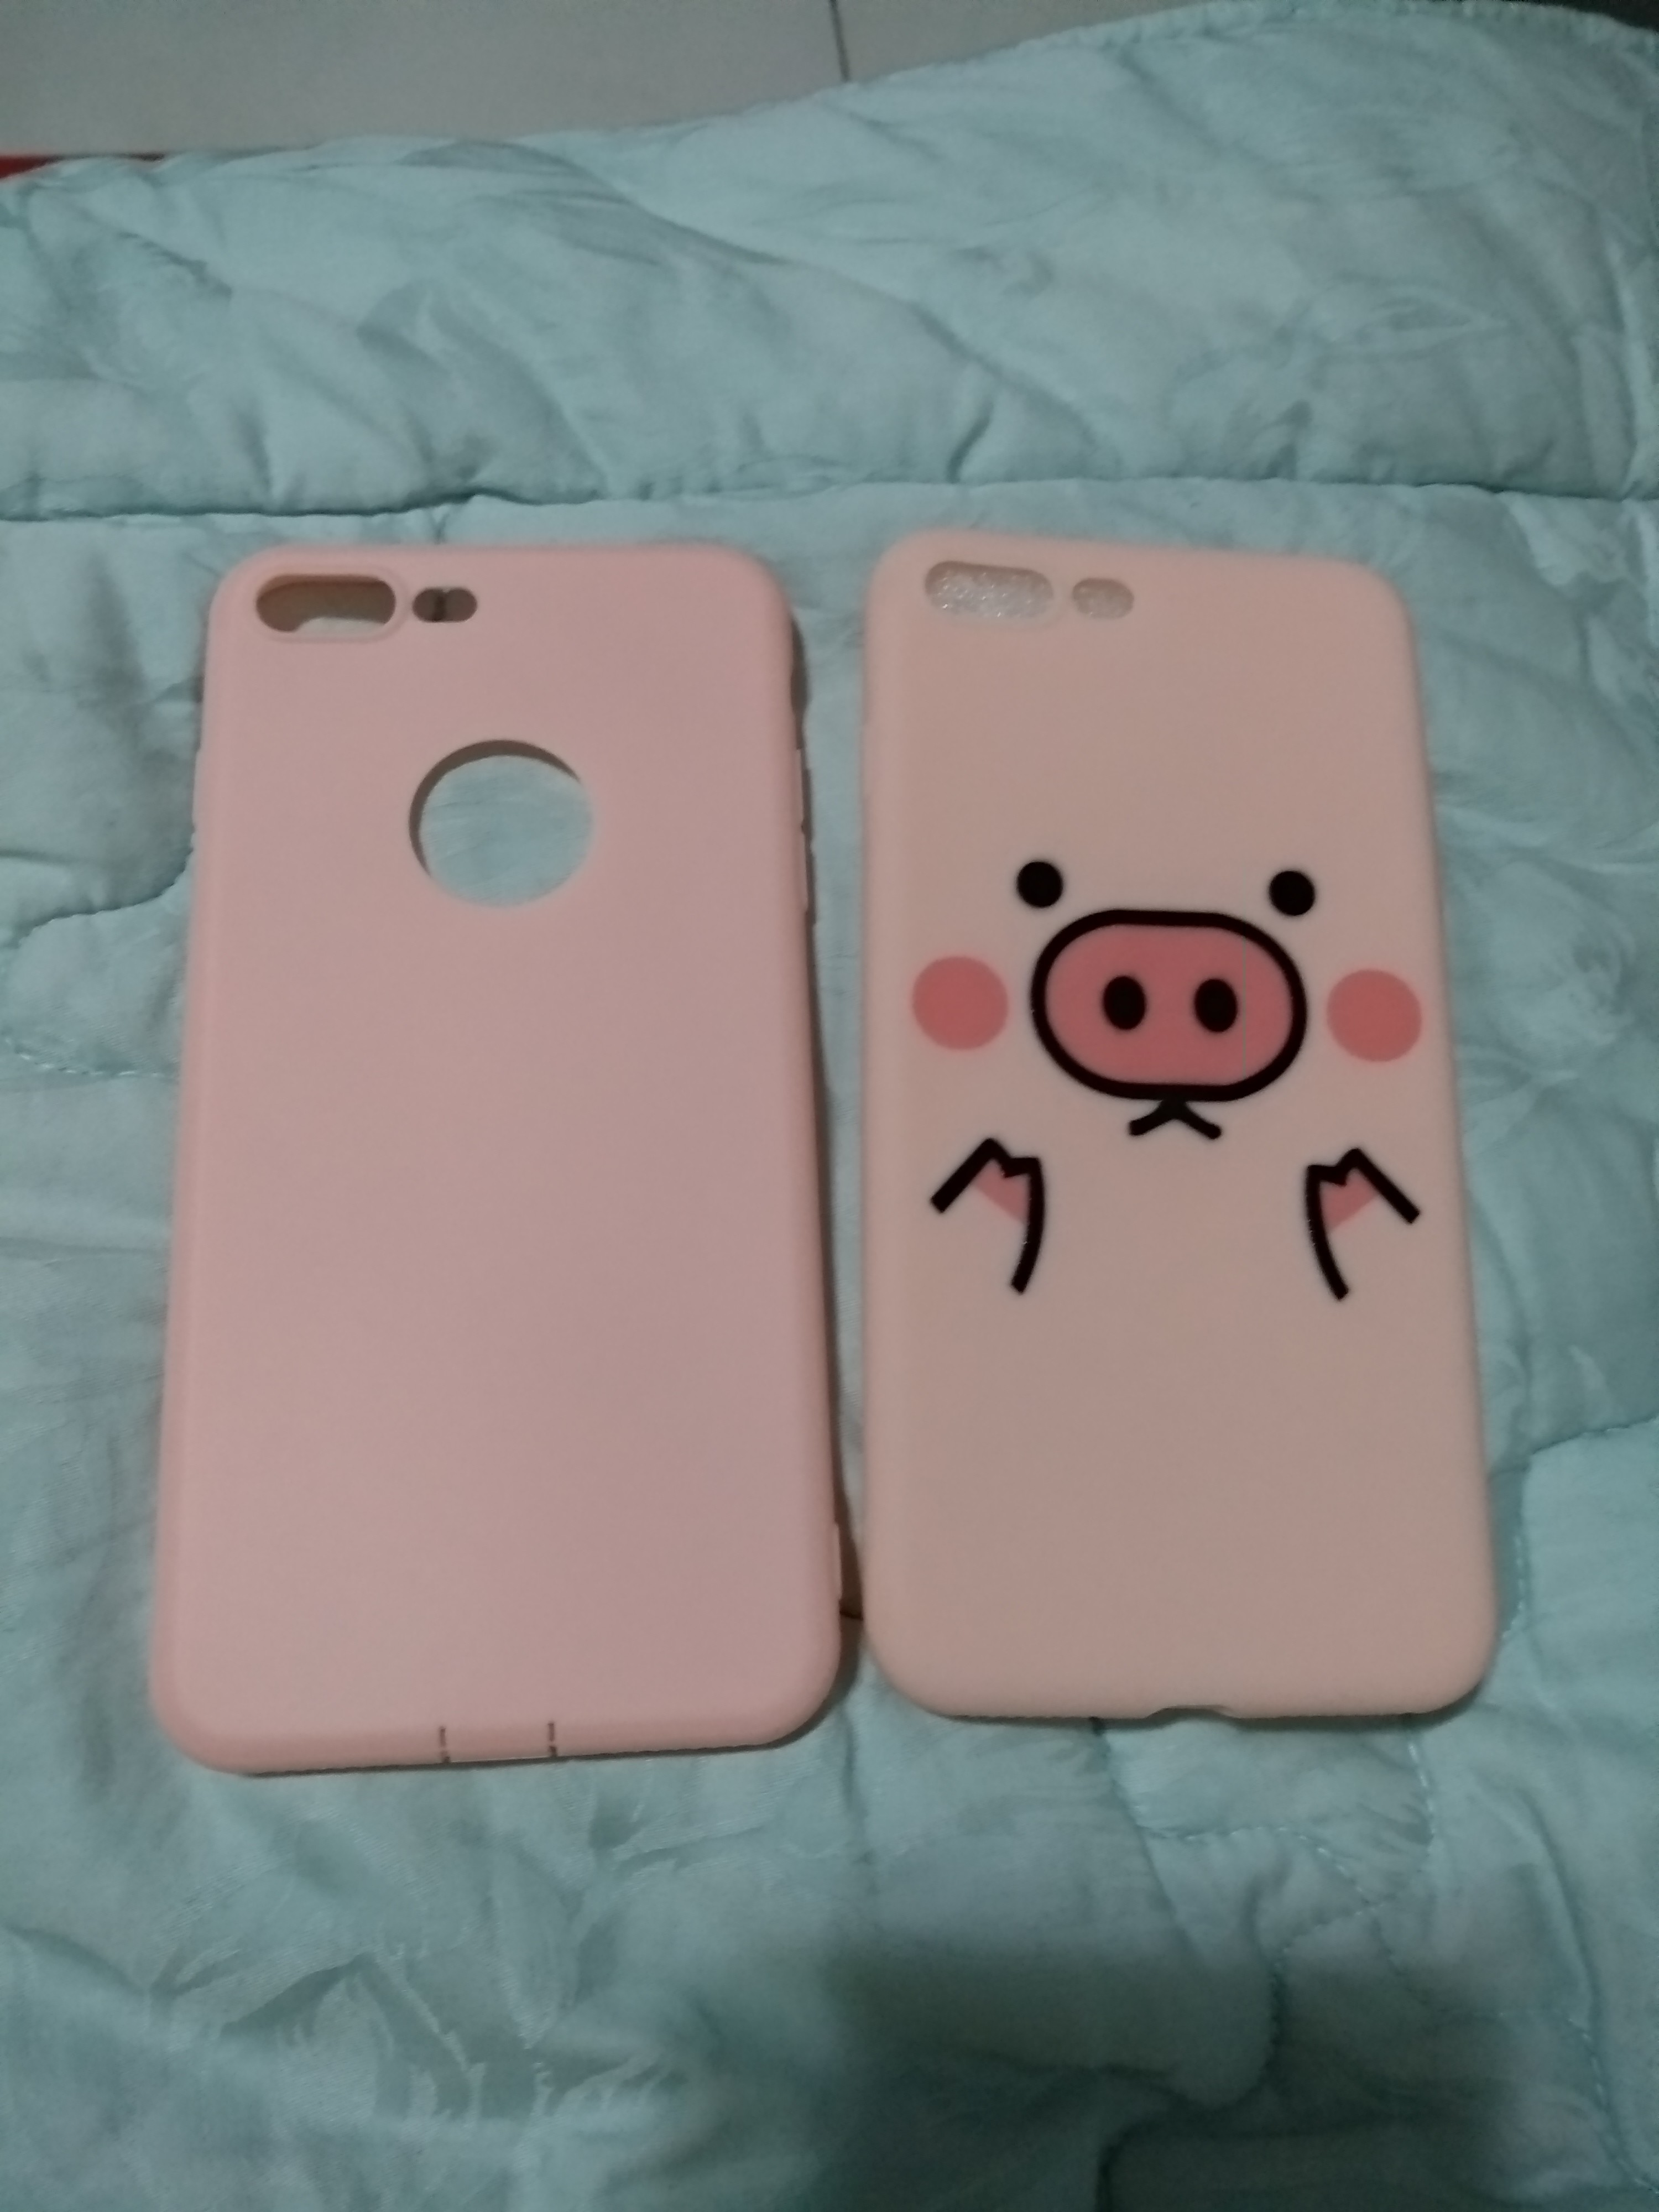 Case Iphone 7 plus 2 cases